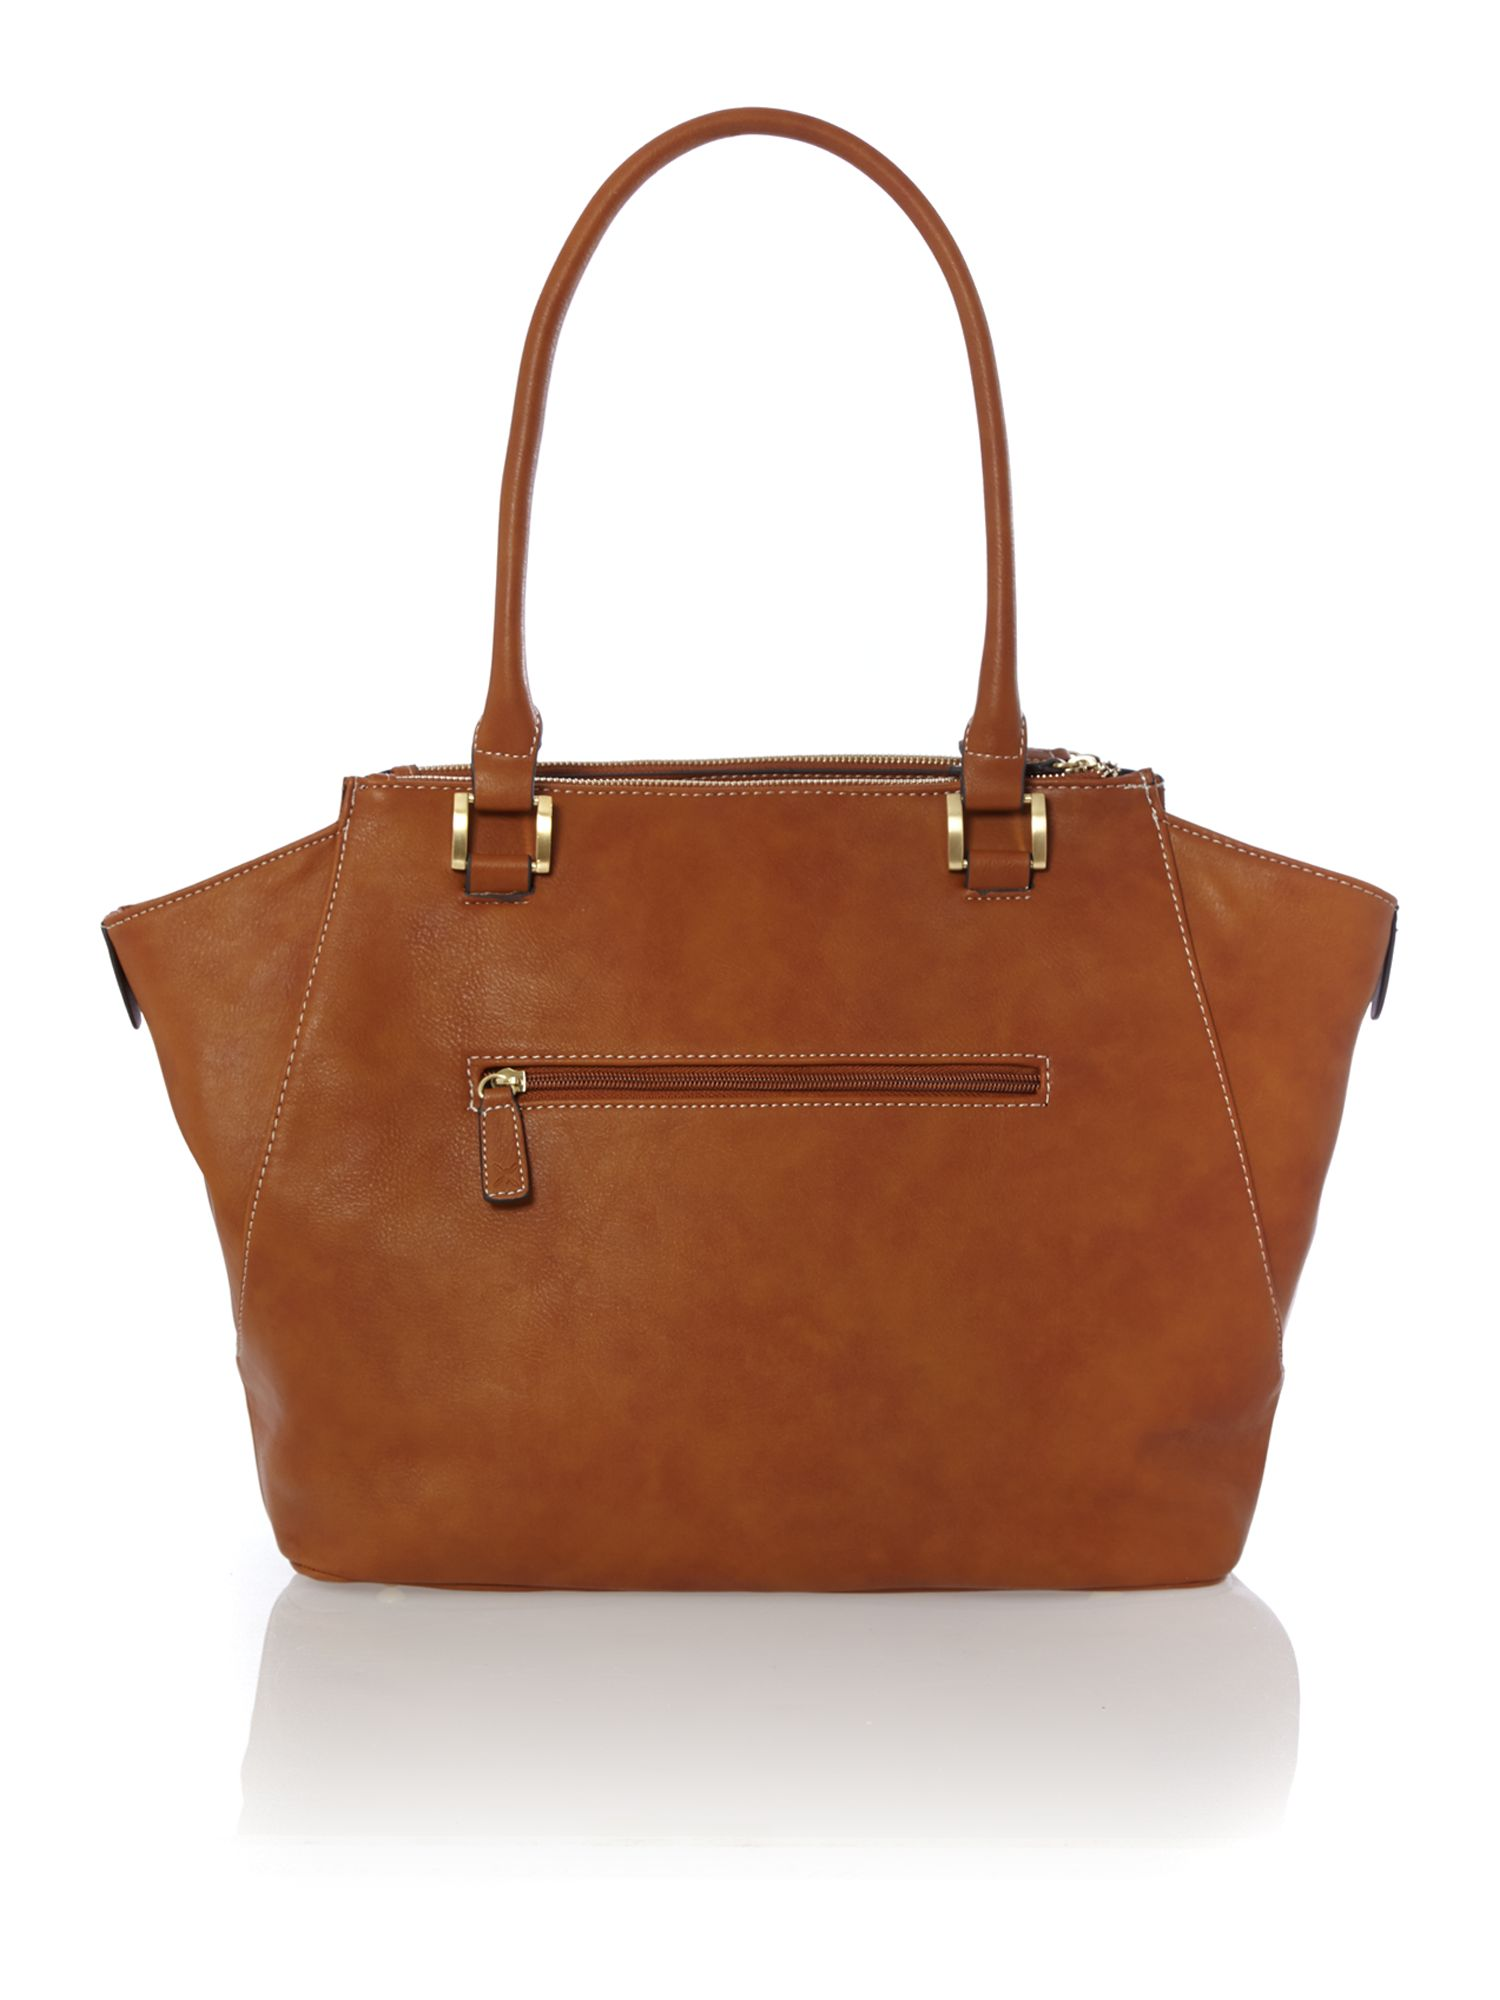 Nova tan large tote bag